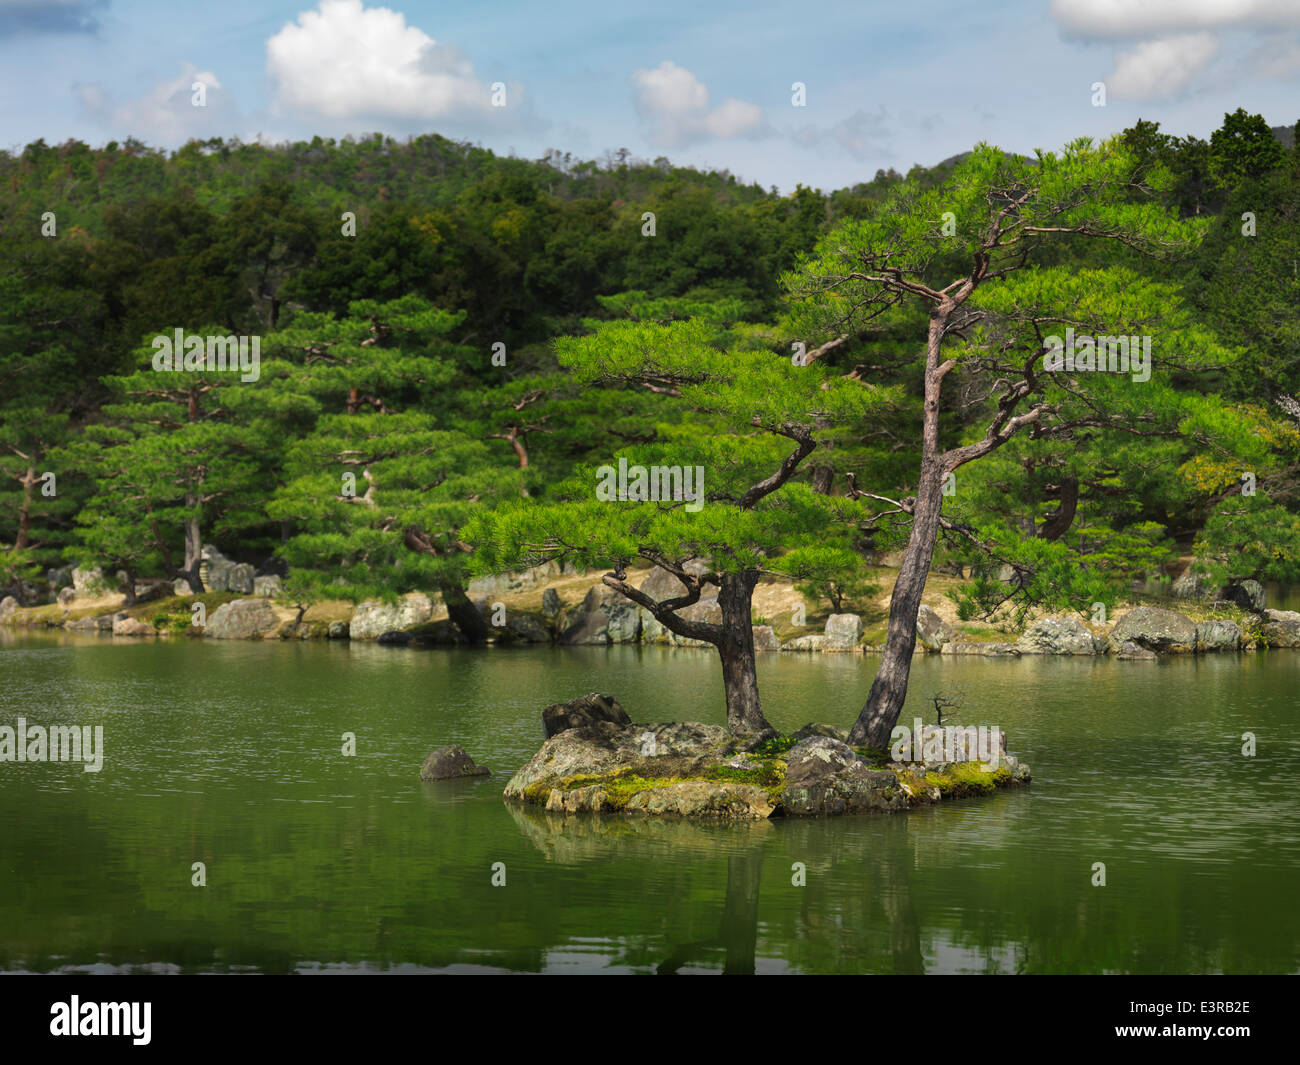 Pine trees at Japanese garden in Kyoto Japan Stock Photo Royalty